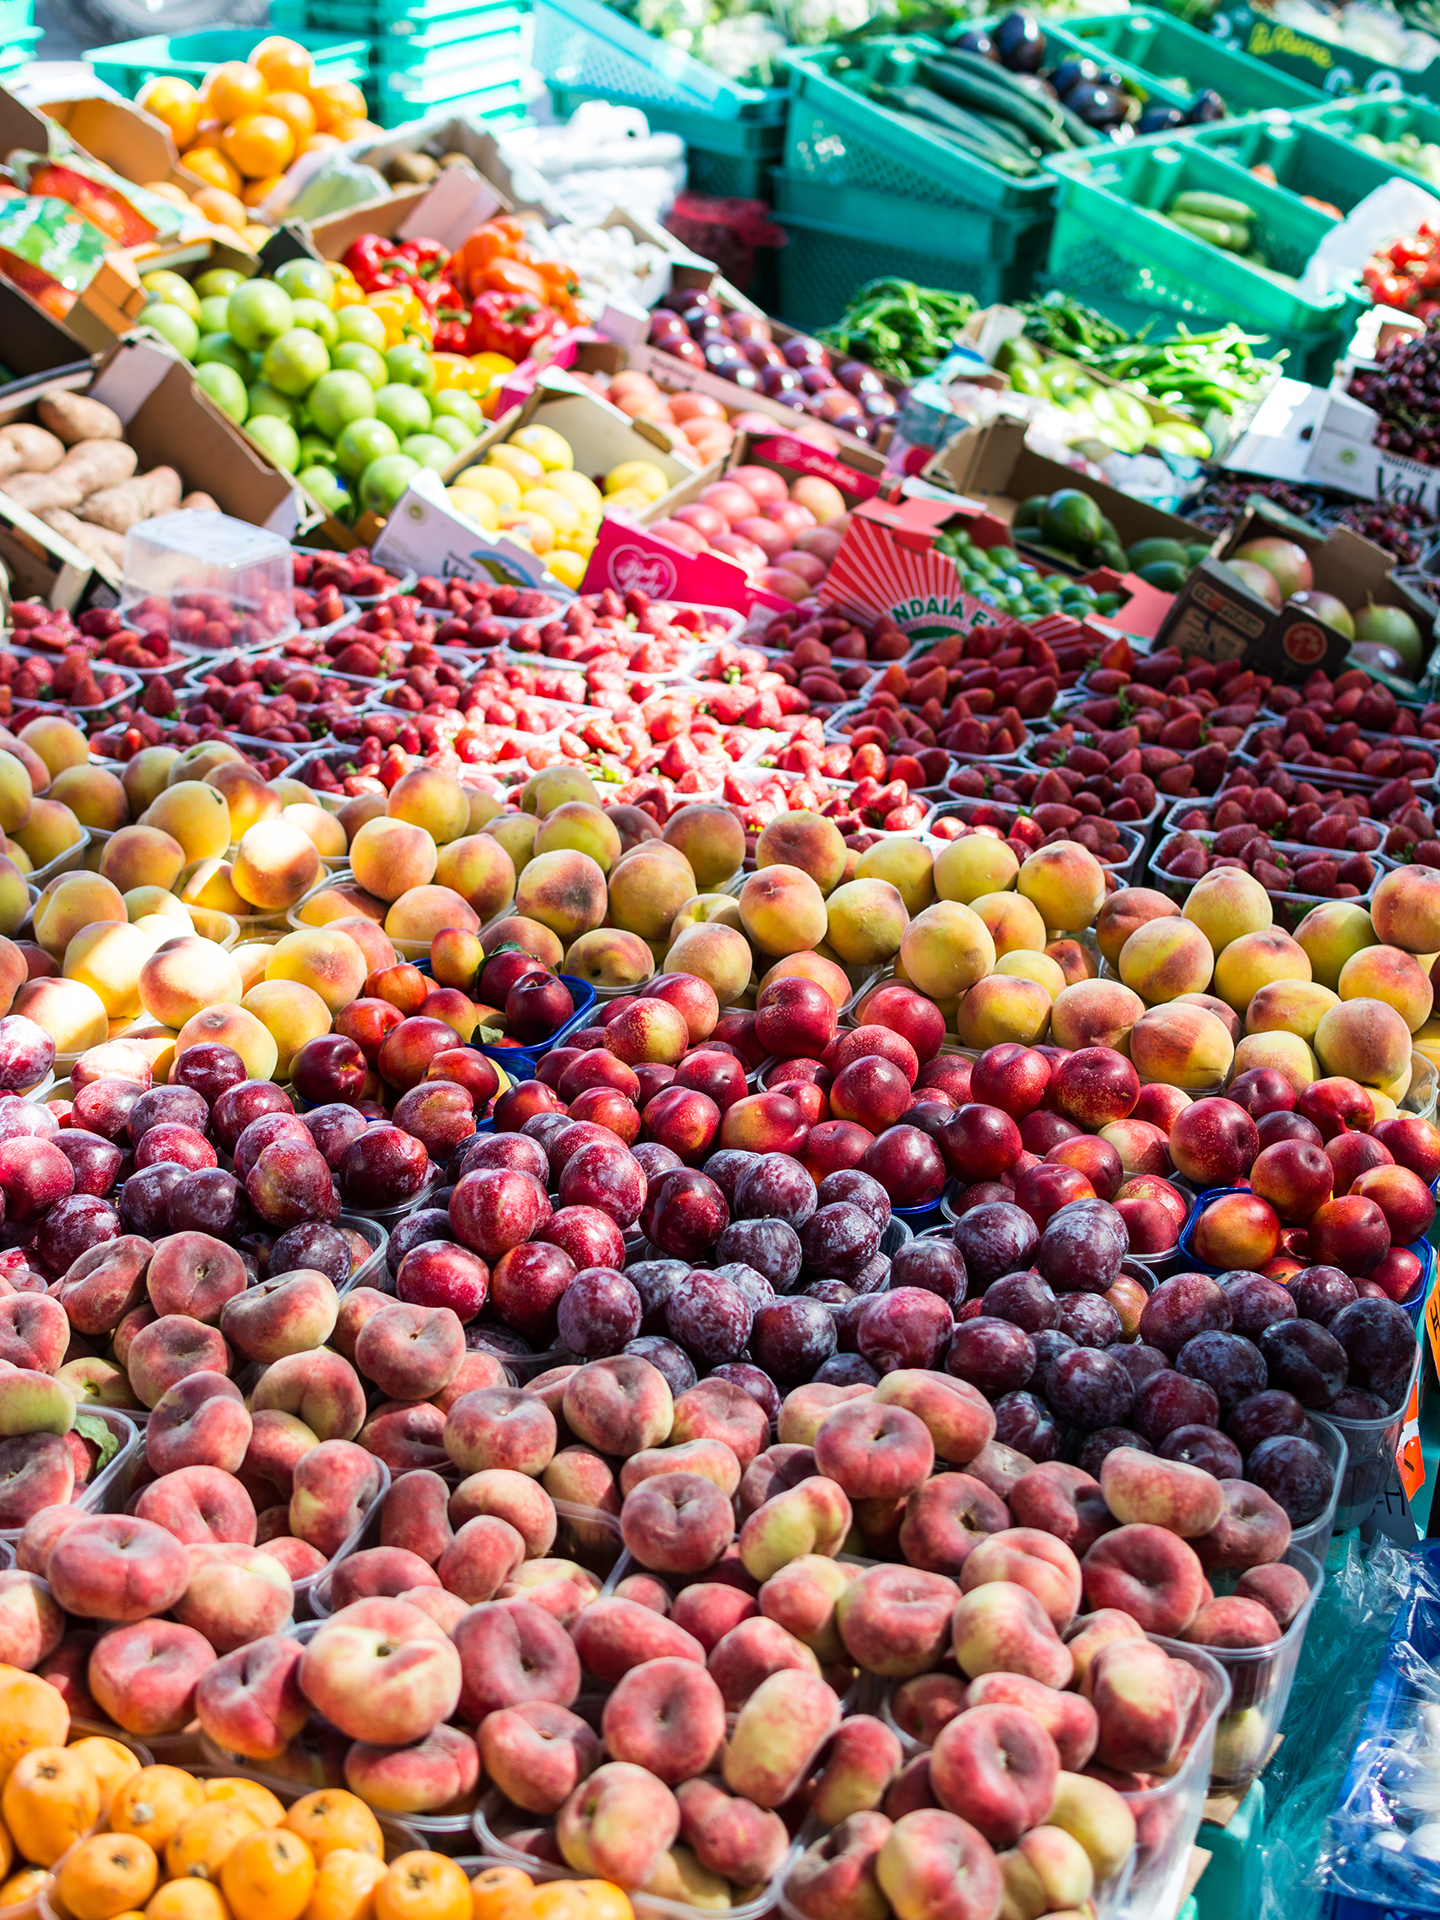 Fruit stand full of food